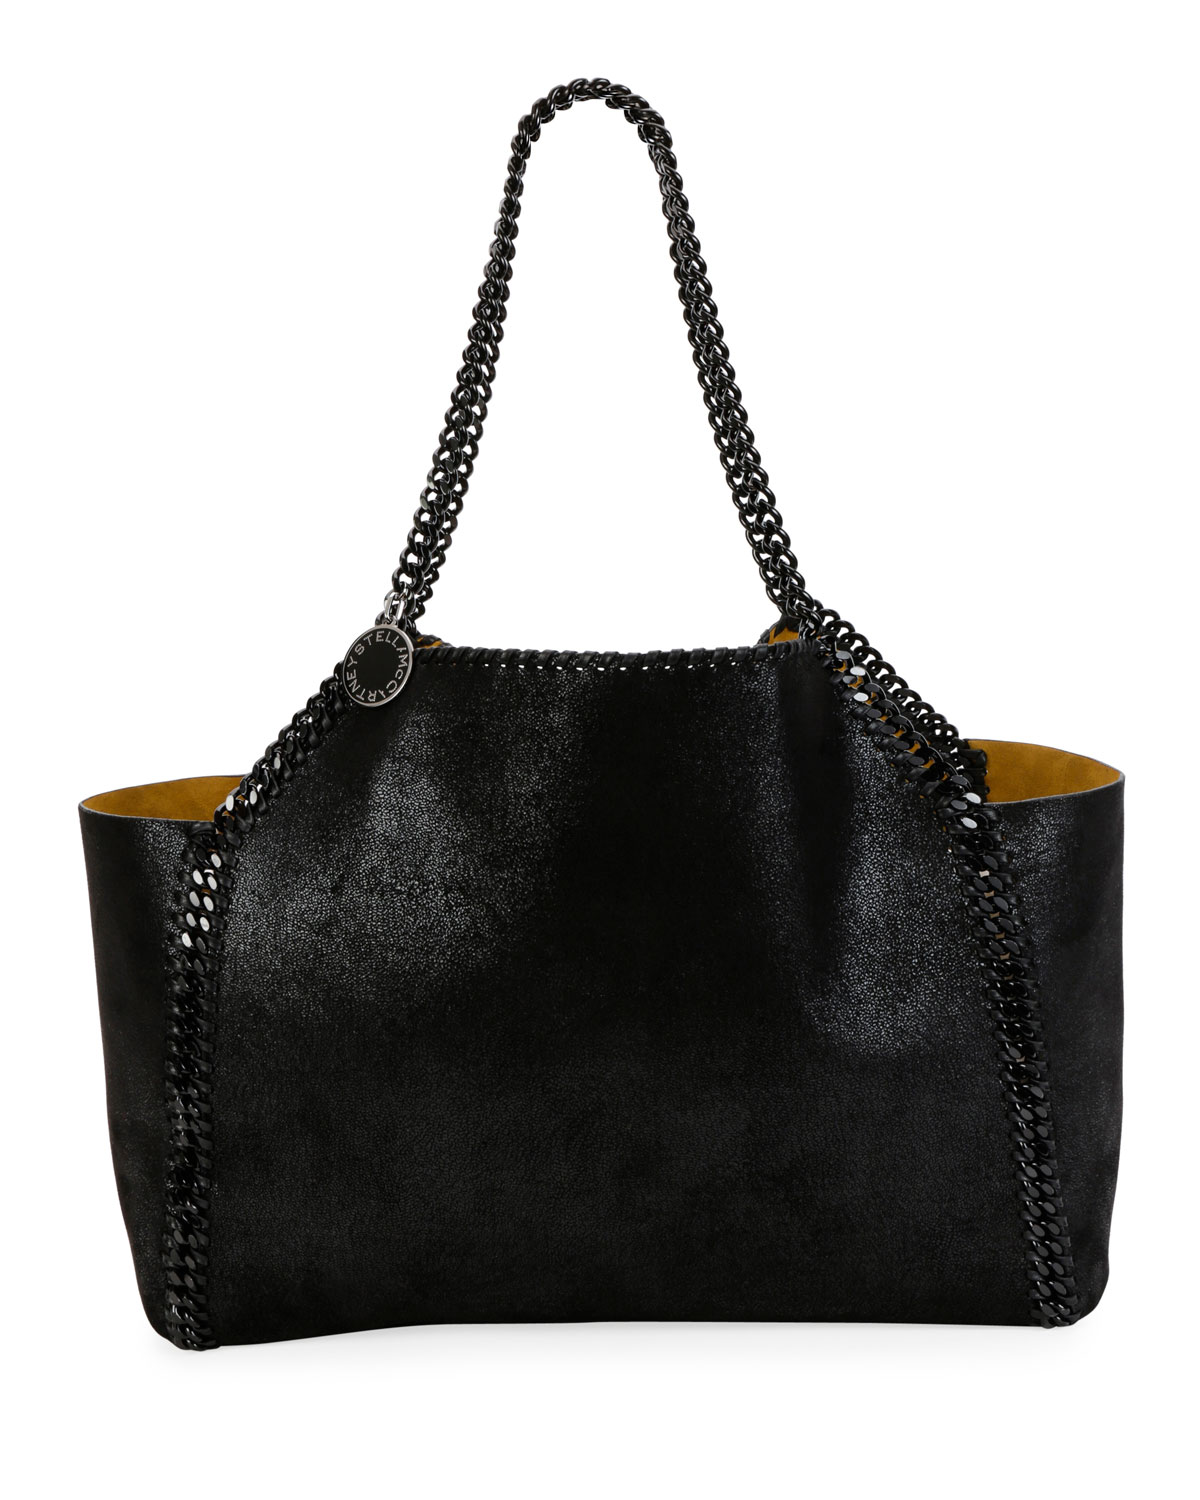 233419b0d3fe Stella McCartneyFalabella Medium Reversible Tote Bag with Black Chain